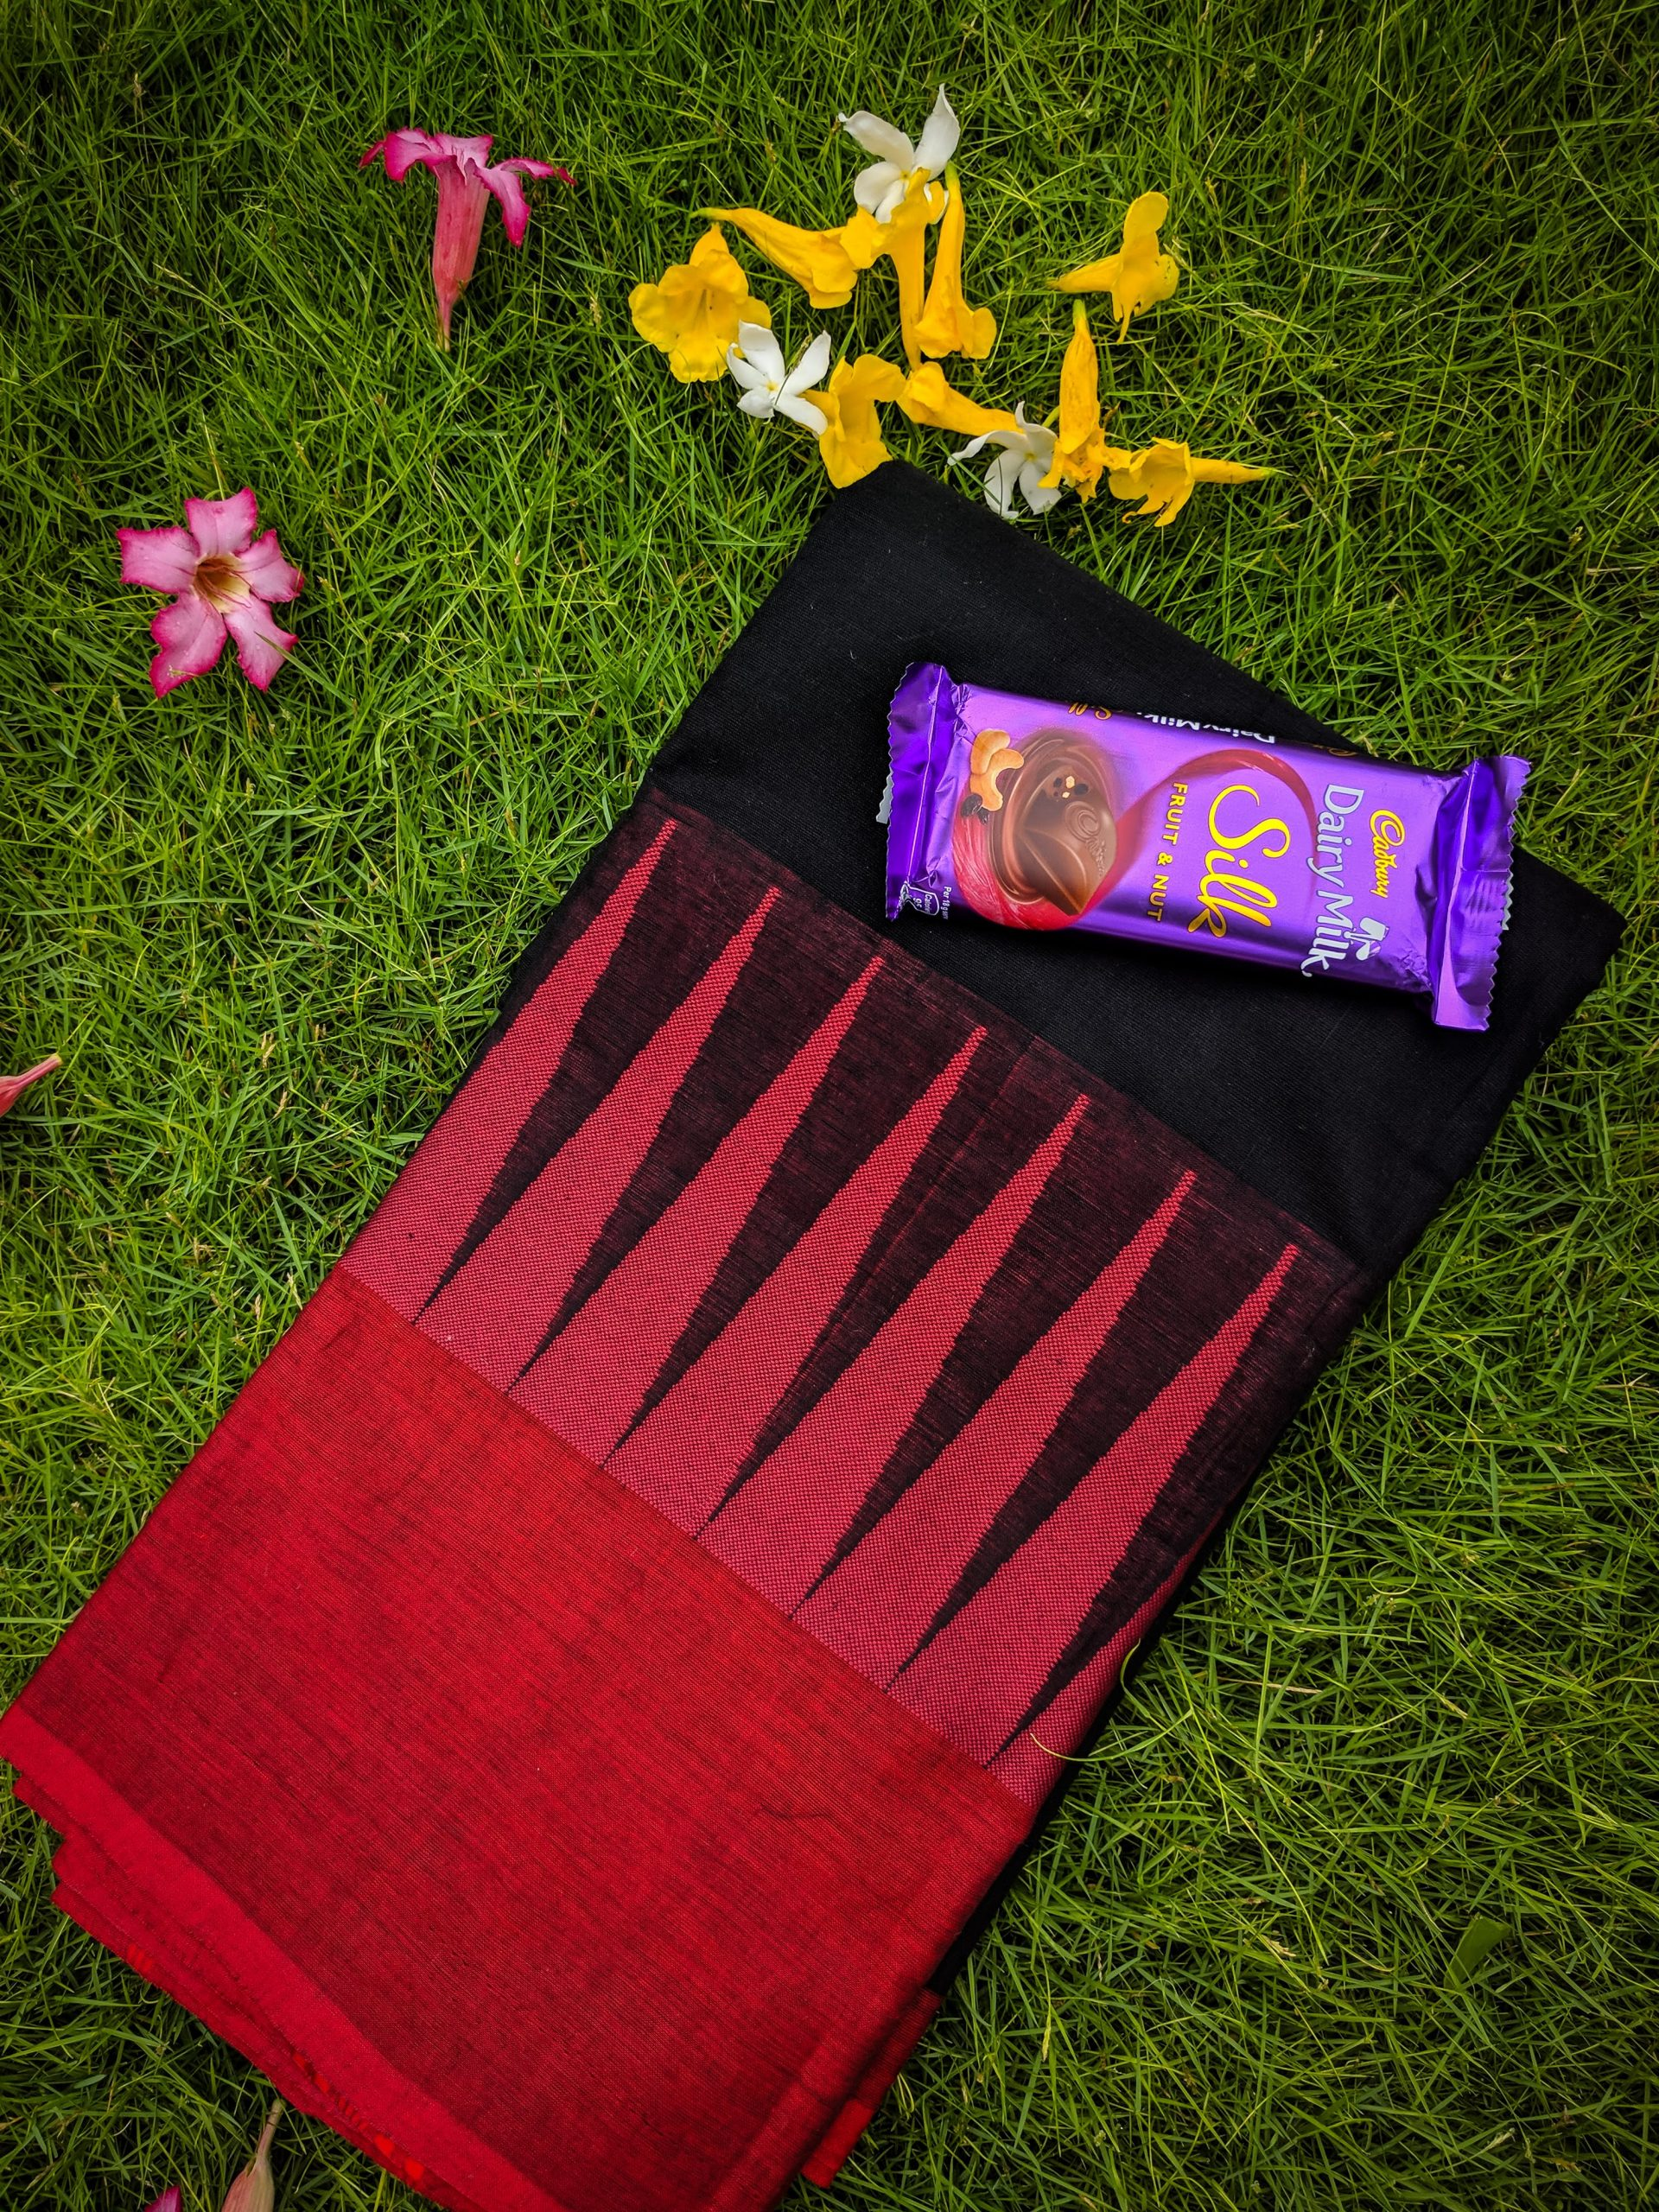 A Chocolate pack on a cloth